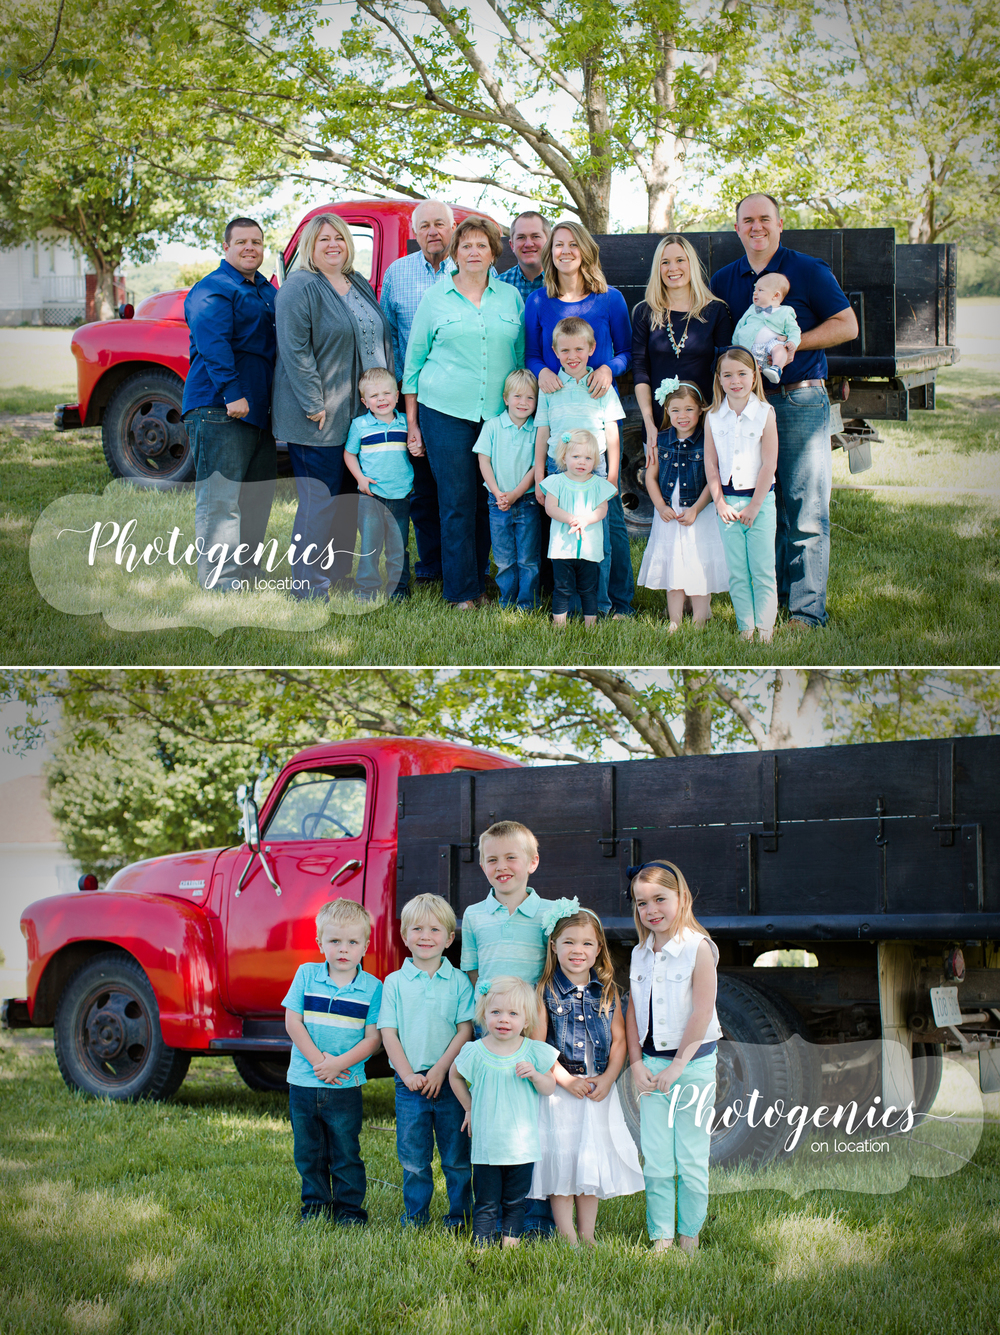 extended_family_session_large_group_poses_photography_outdoor 1.jpg